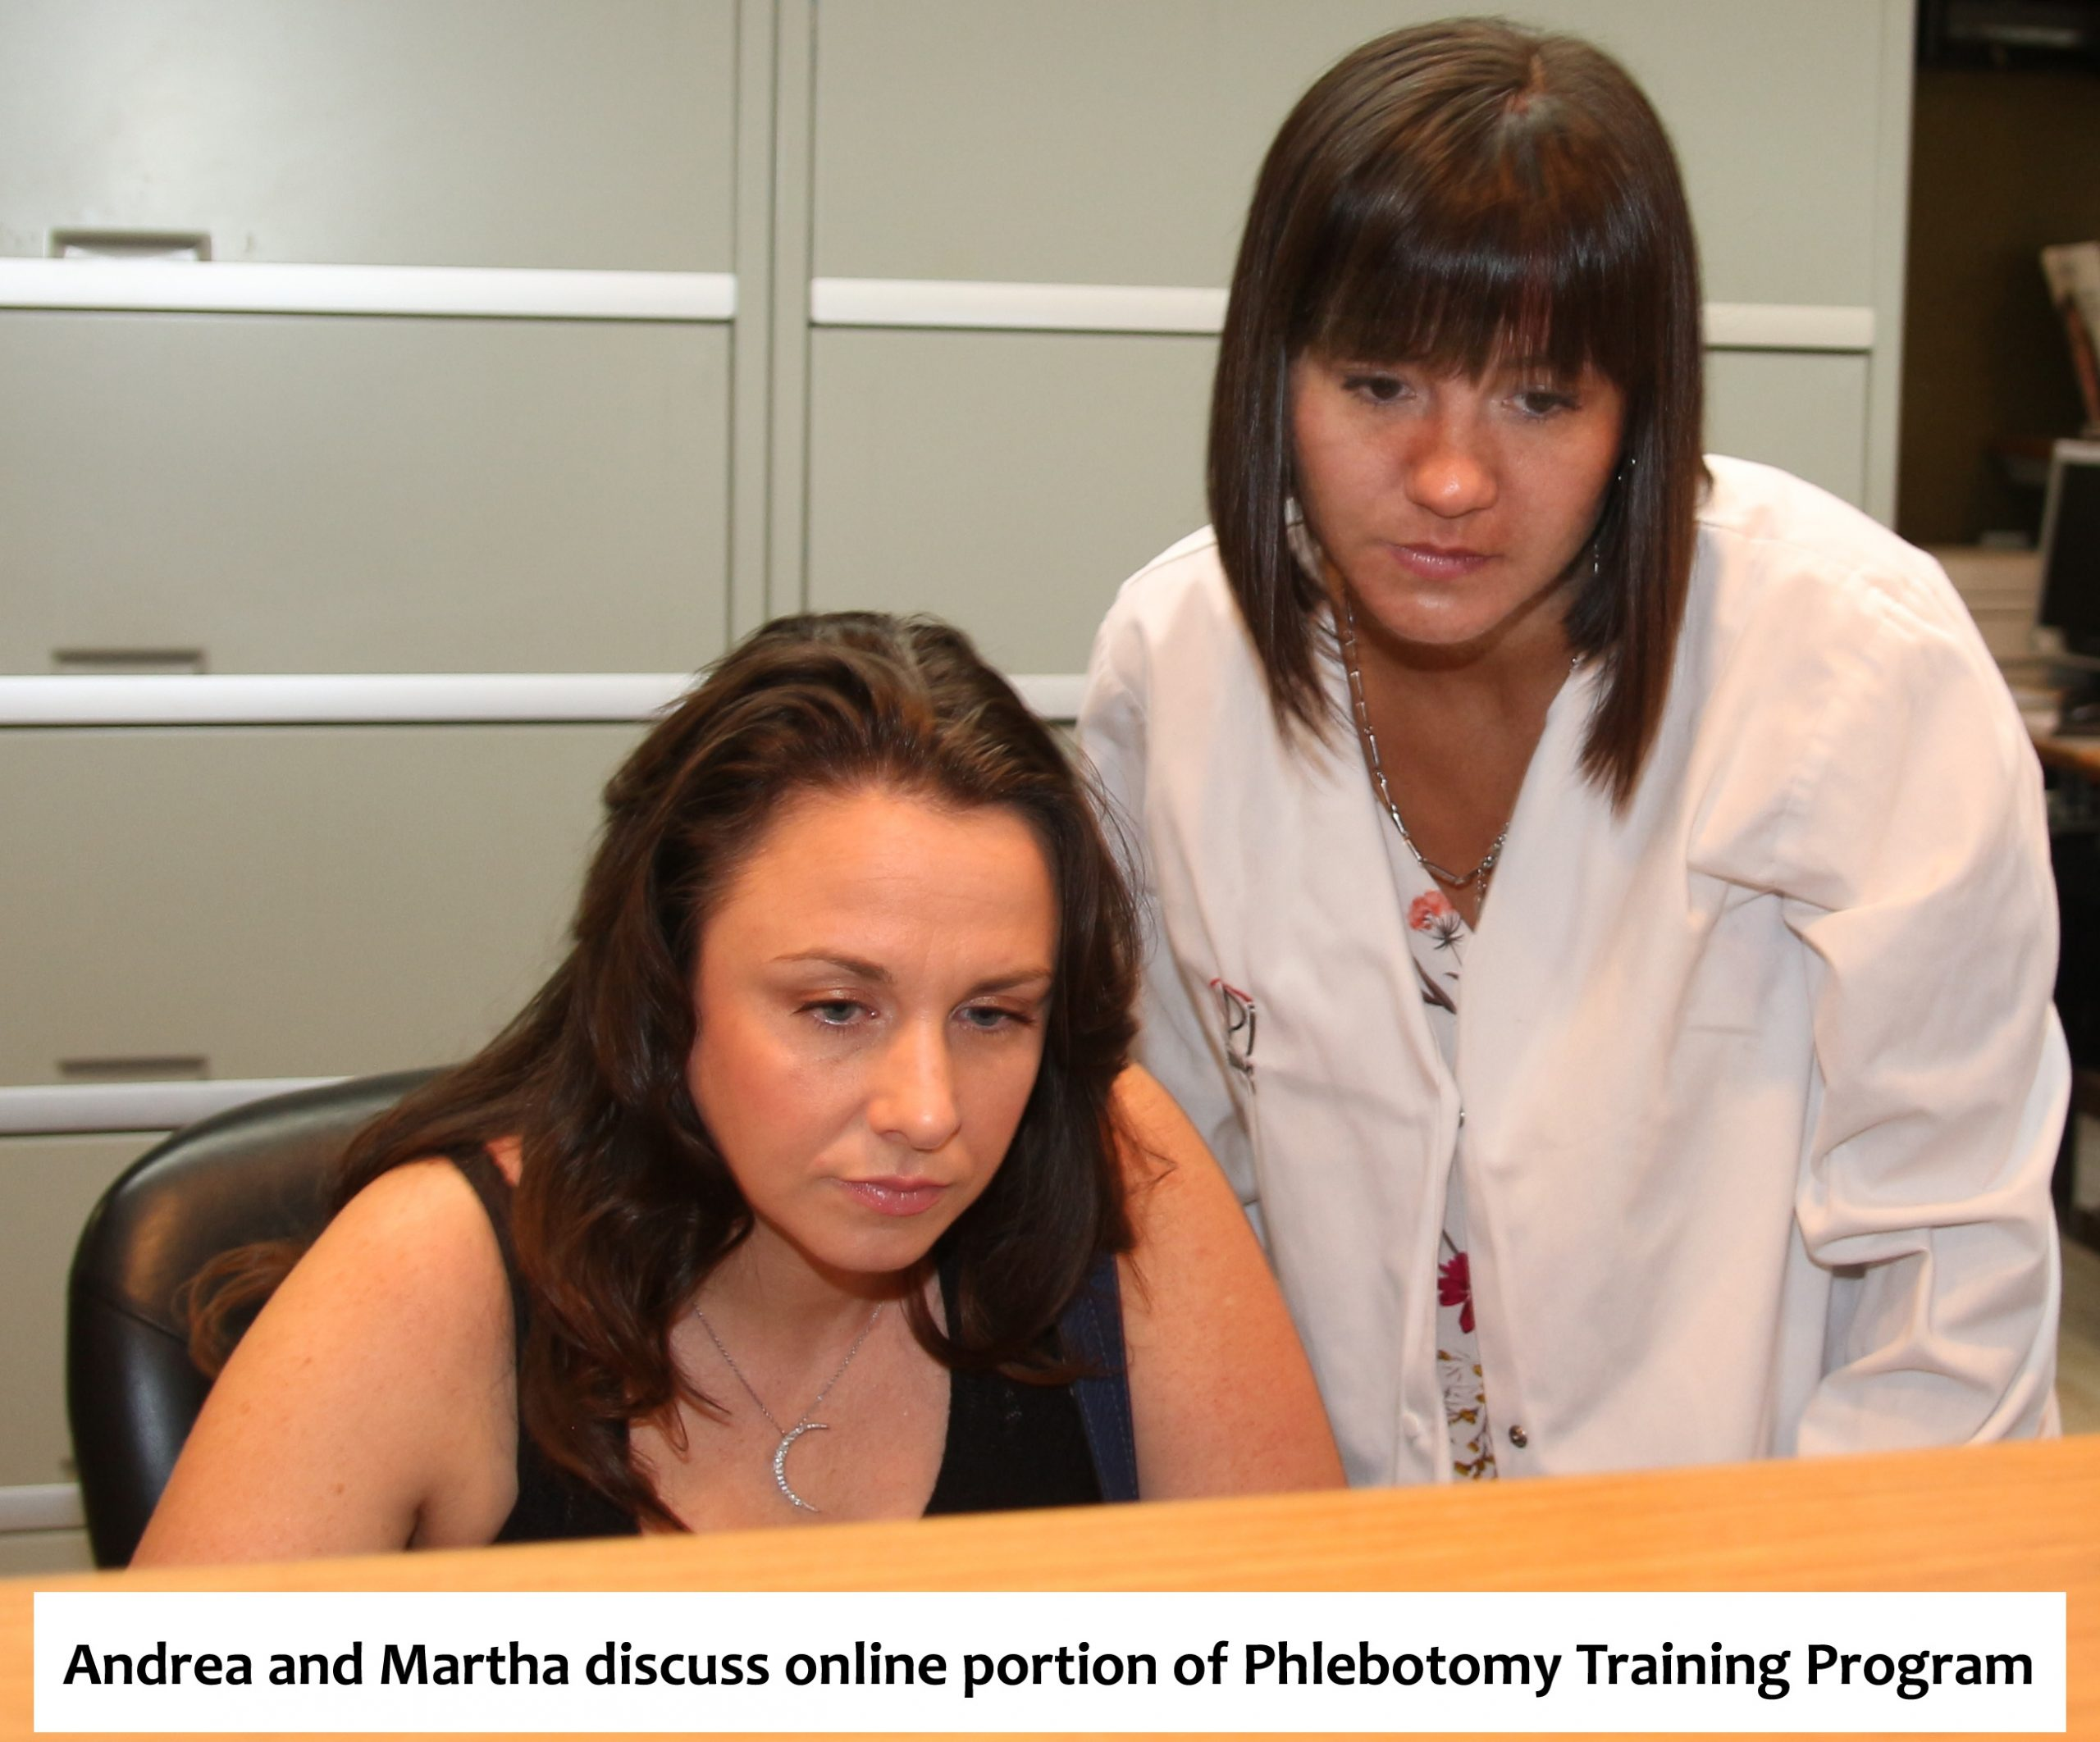 Andrea and Martha discuss the online portion of the phlebotomy training program.